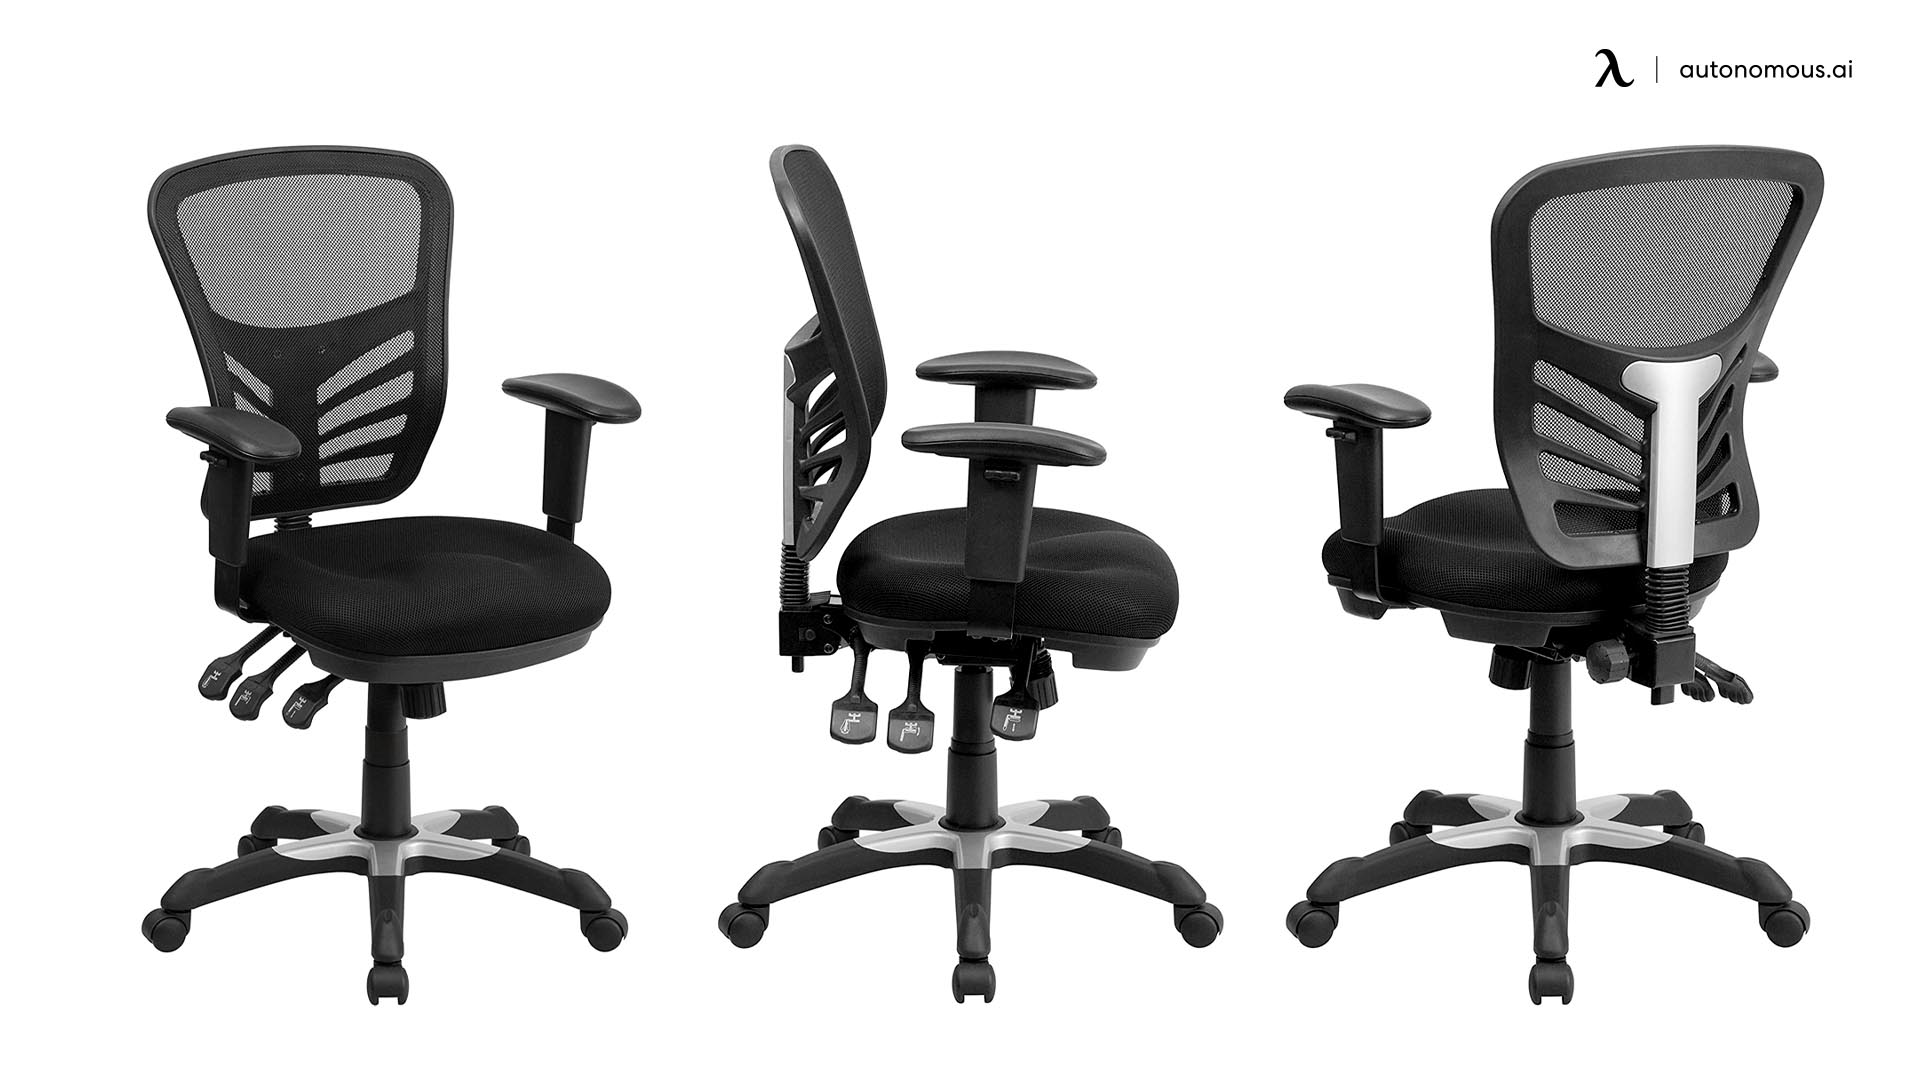 The Flash Furniture Mid-back Drafting Chair